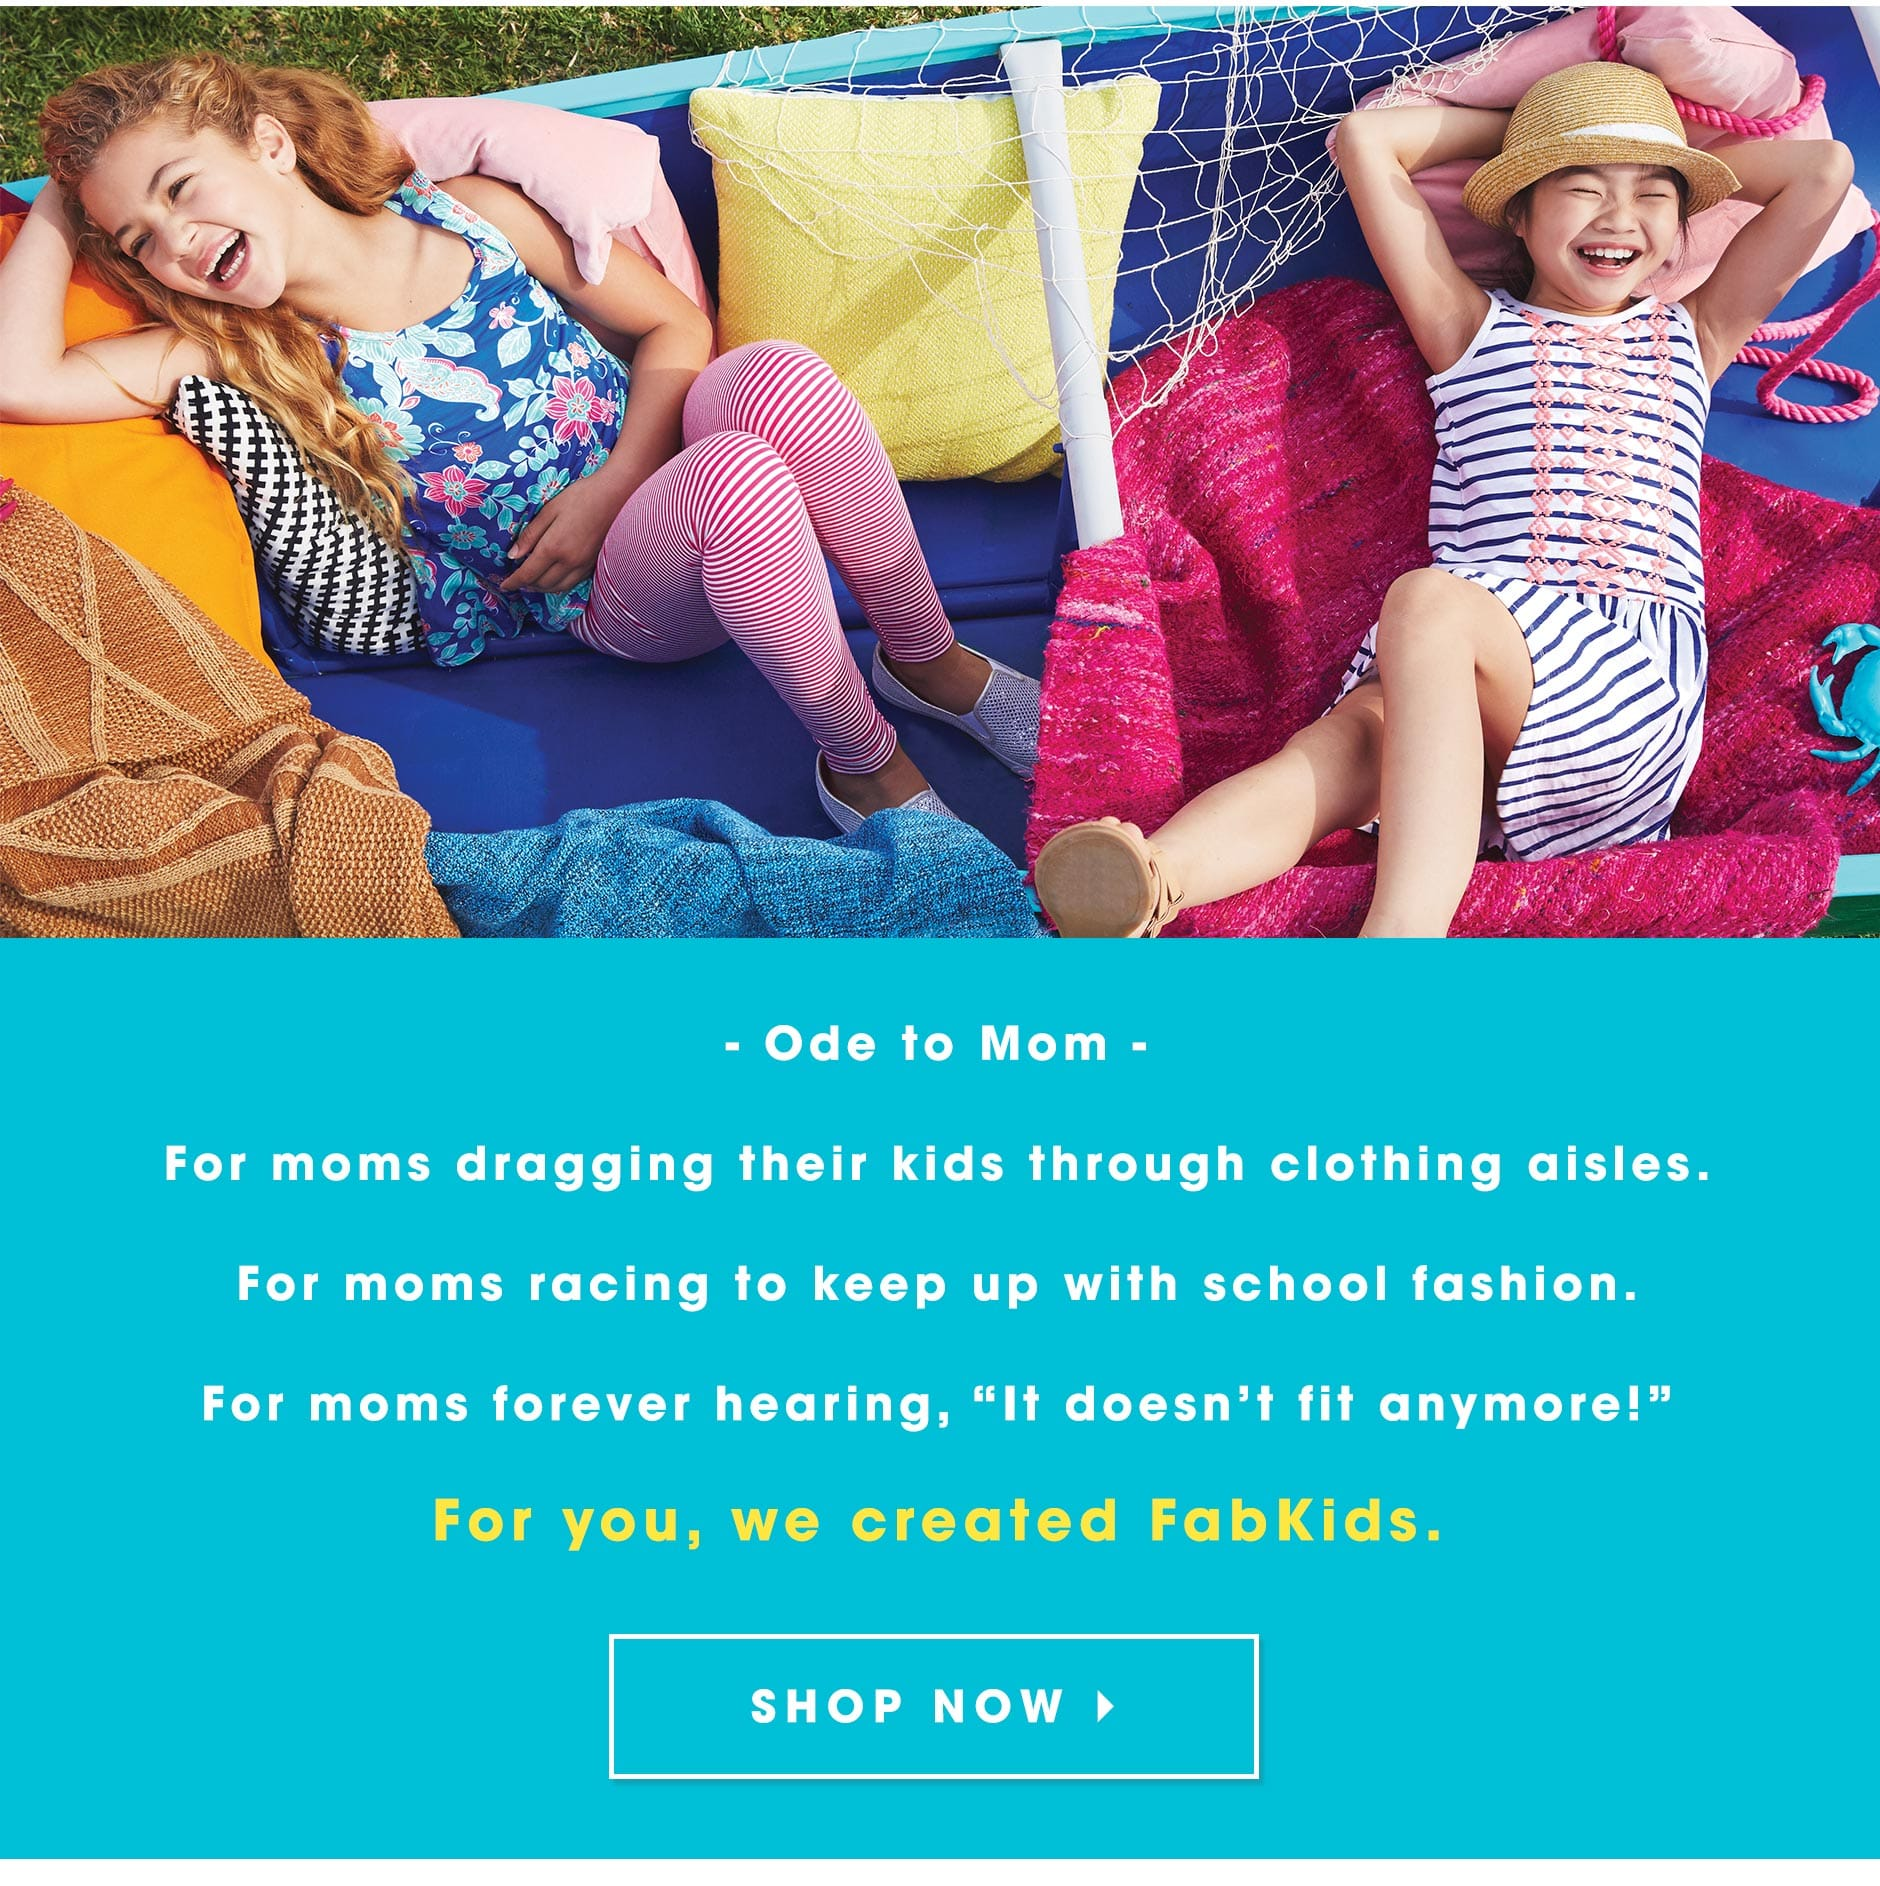 "Ode to Mom: For moms dragging their kids through clothing aisles. For moms racing to keep up with school fashion. For moms forever hearing, ""It doesn't fit anymore!"" For you, we created FabKids."